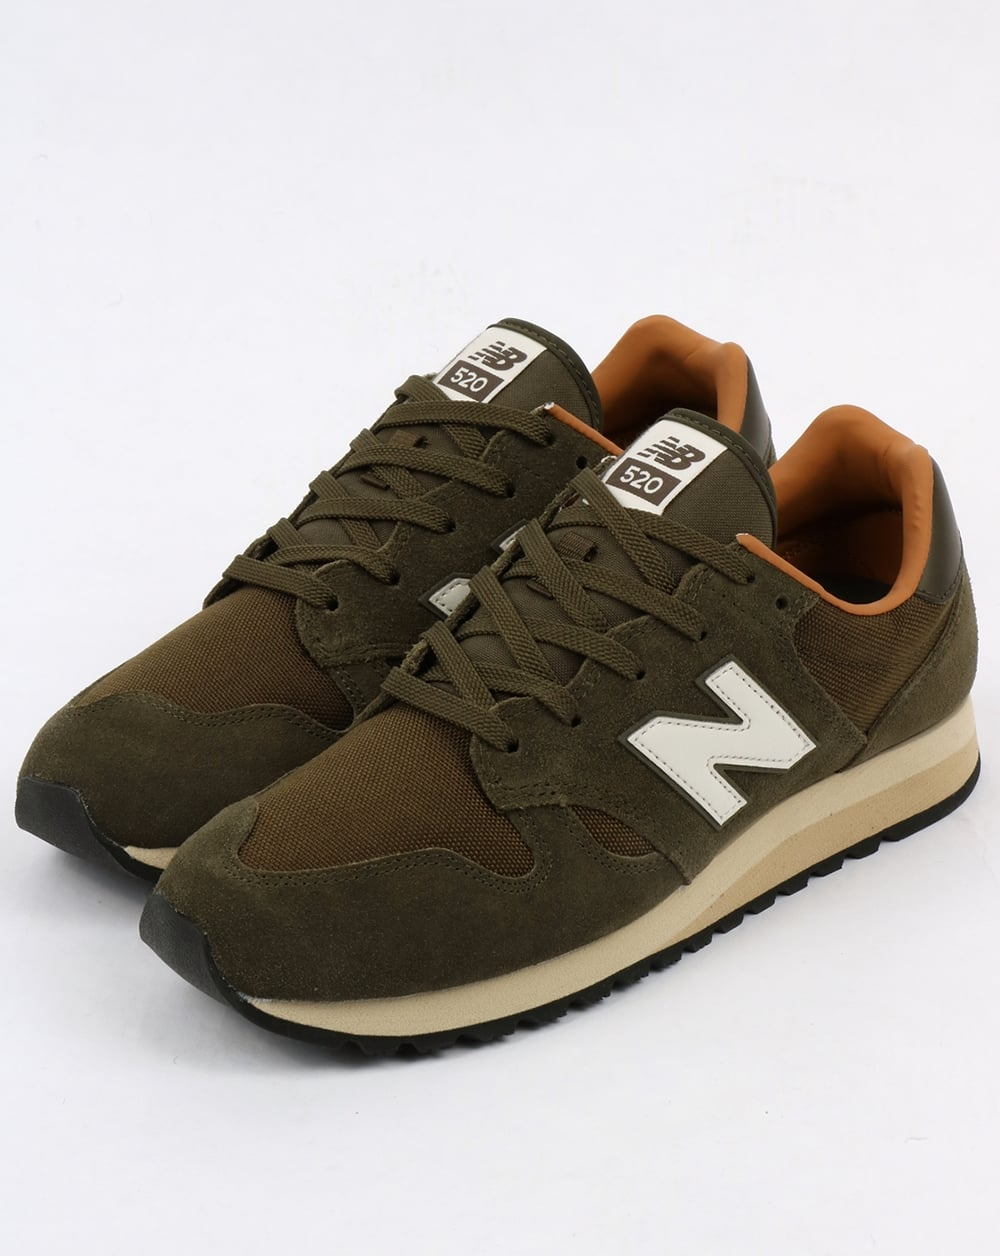 new balance 520 trainers military dark brown sugar shoes running 70s. Black Bedroom Furniture Sets. Home Design Ideas